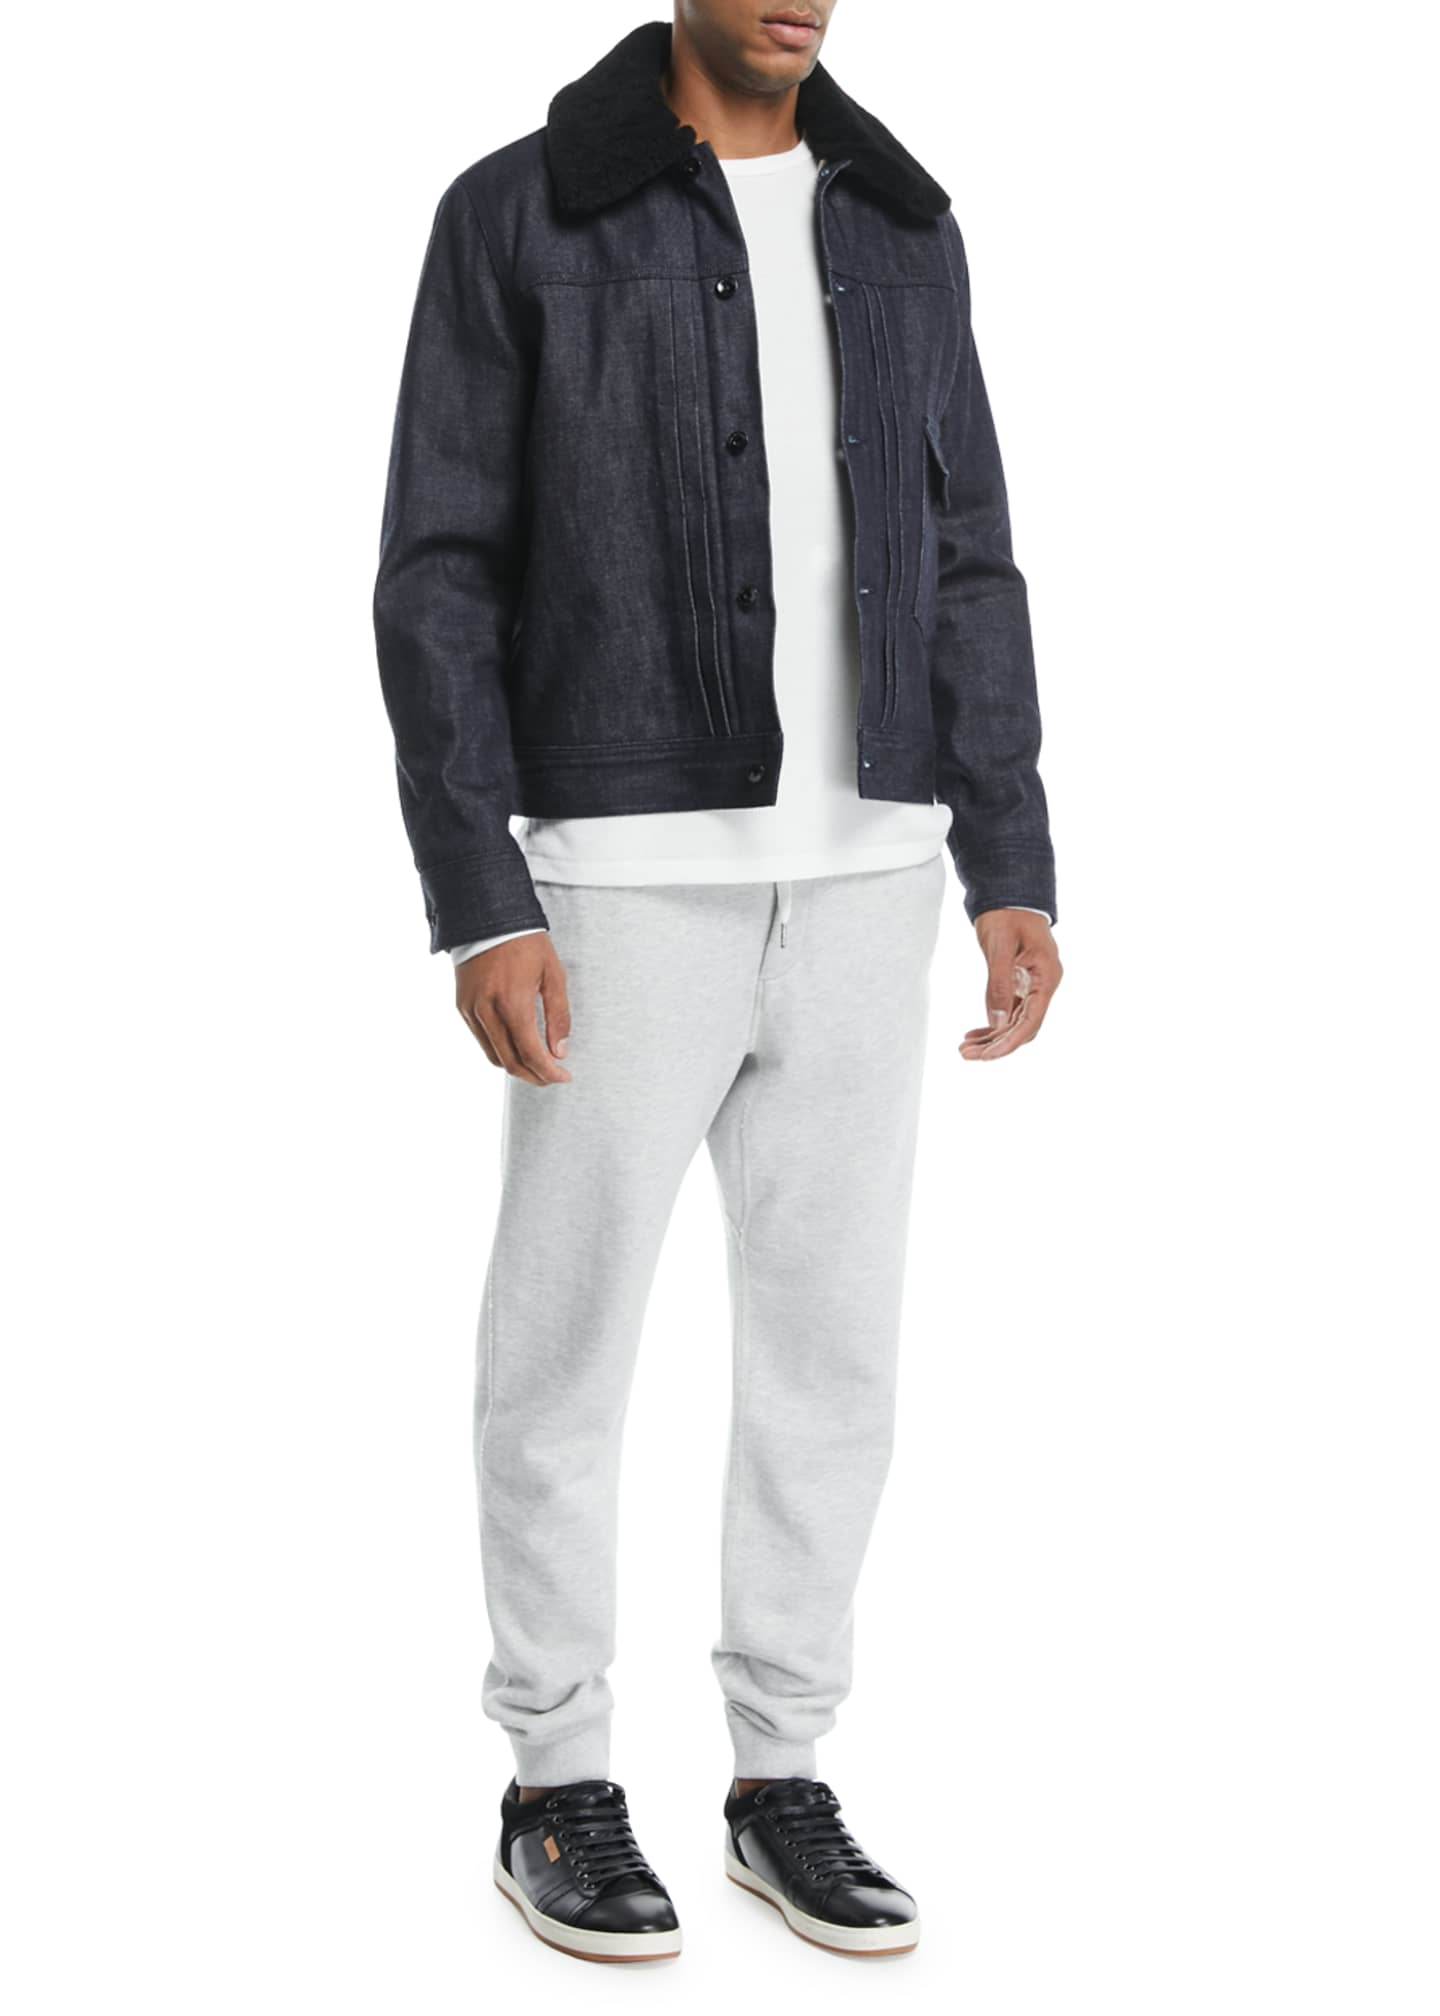 Image 3 of 3: Men's Classic Vintage Athletic-Inspired Sweatpants